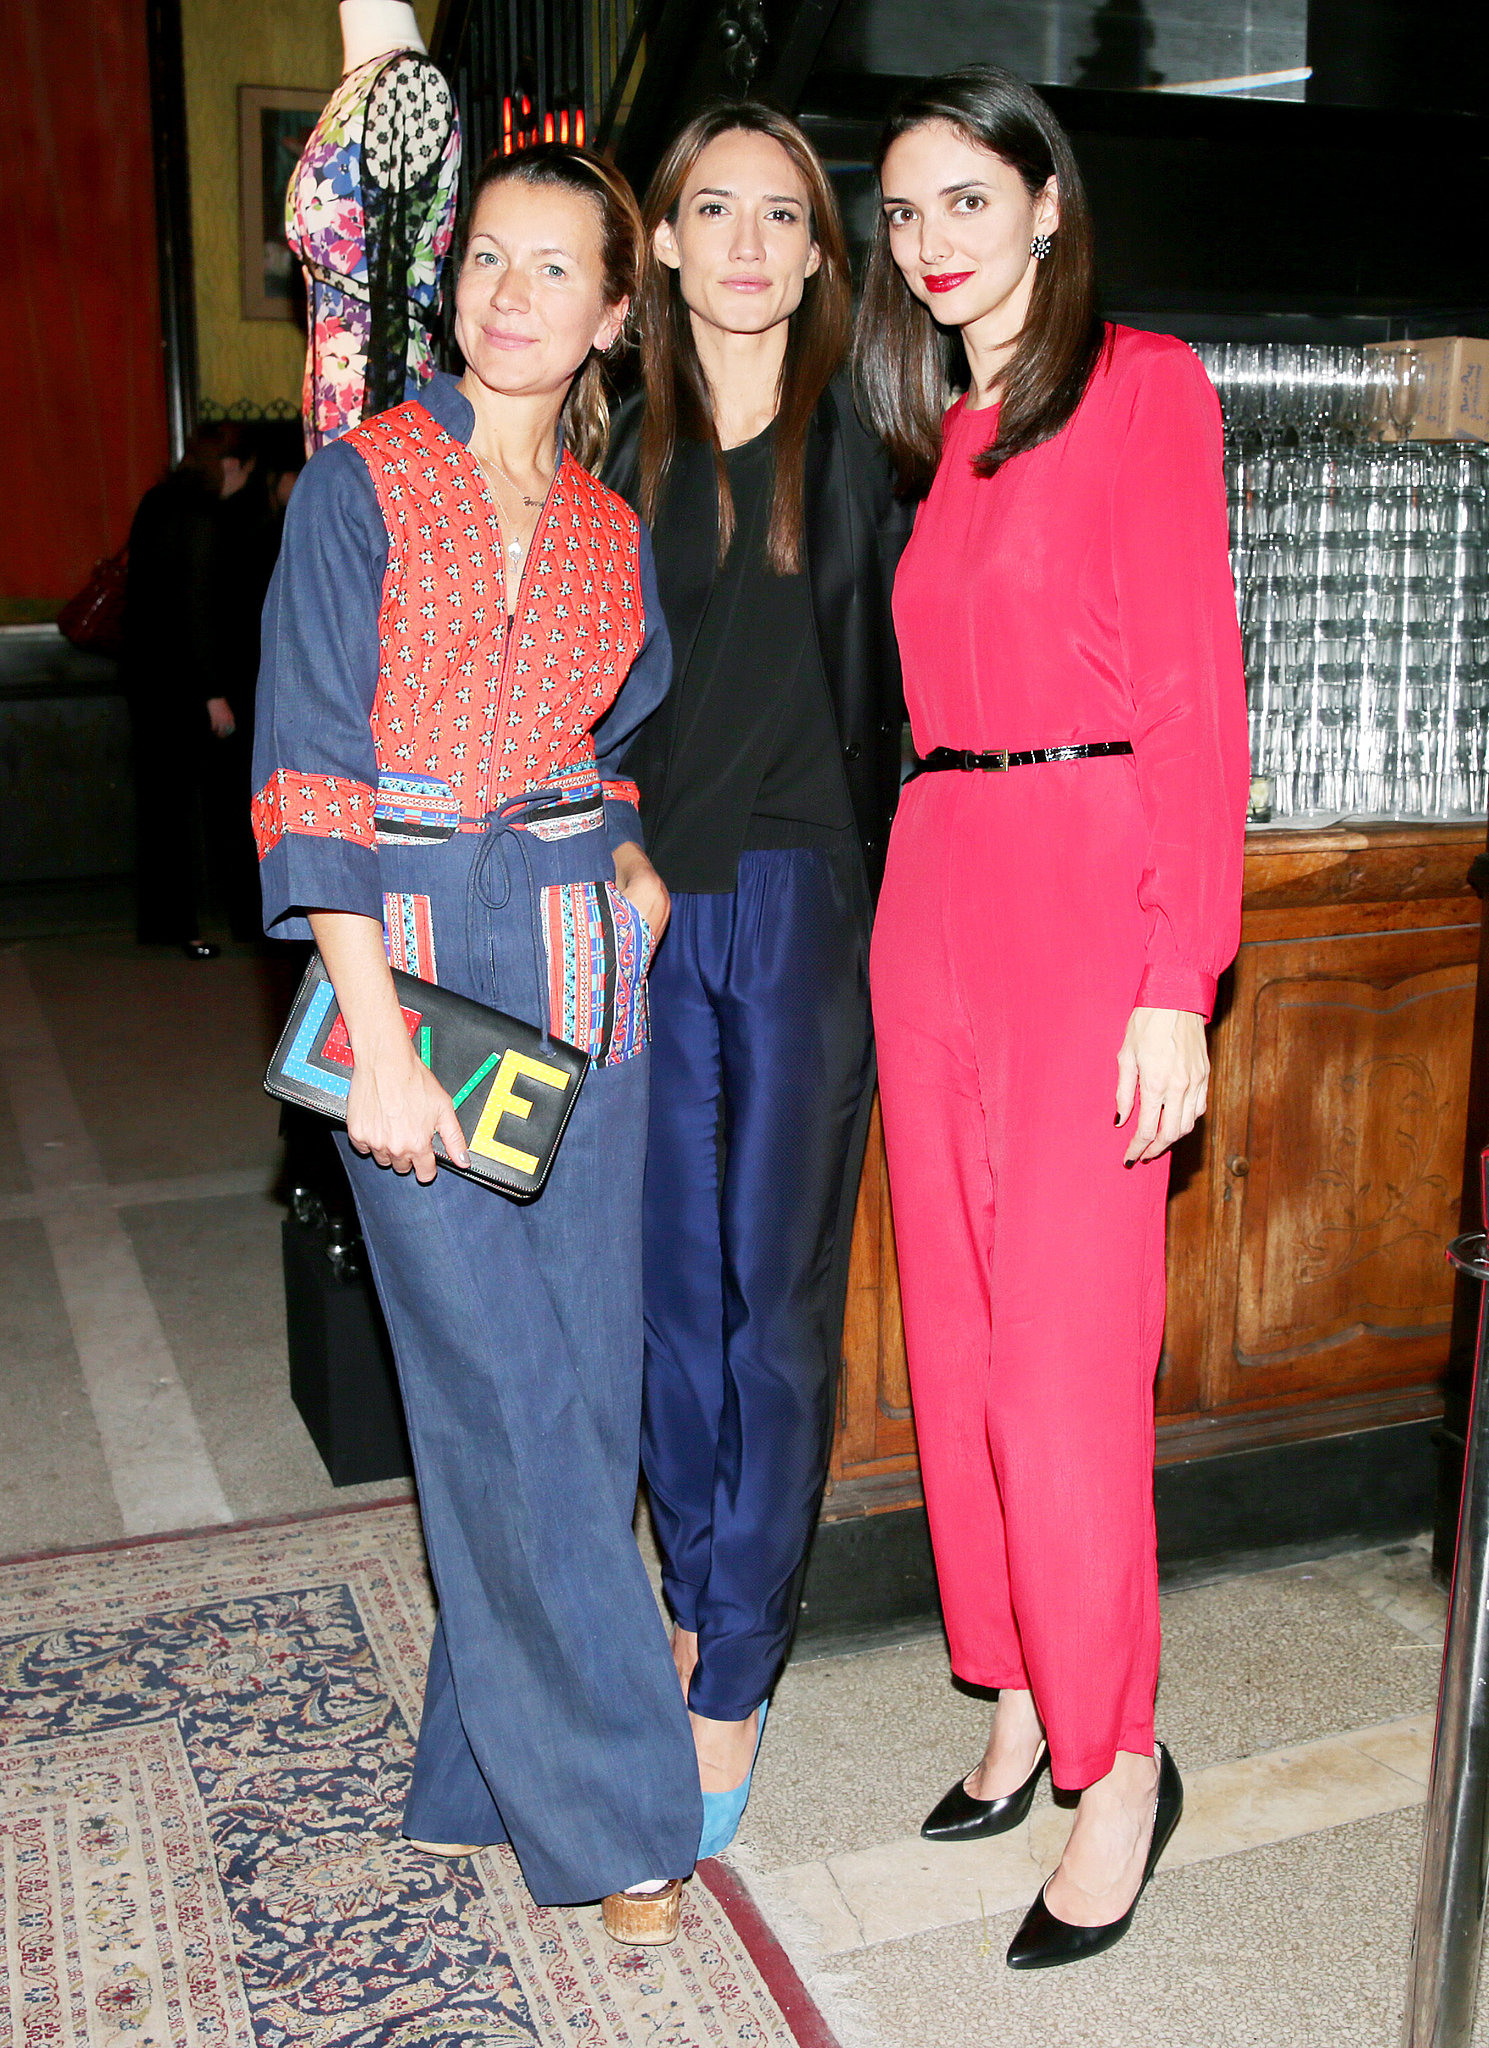 Natalie Joos, Zani Gugelmann, and Eugenia Miranda at the Vintage Vanguard benefit.